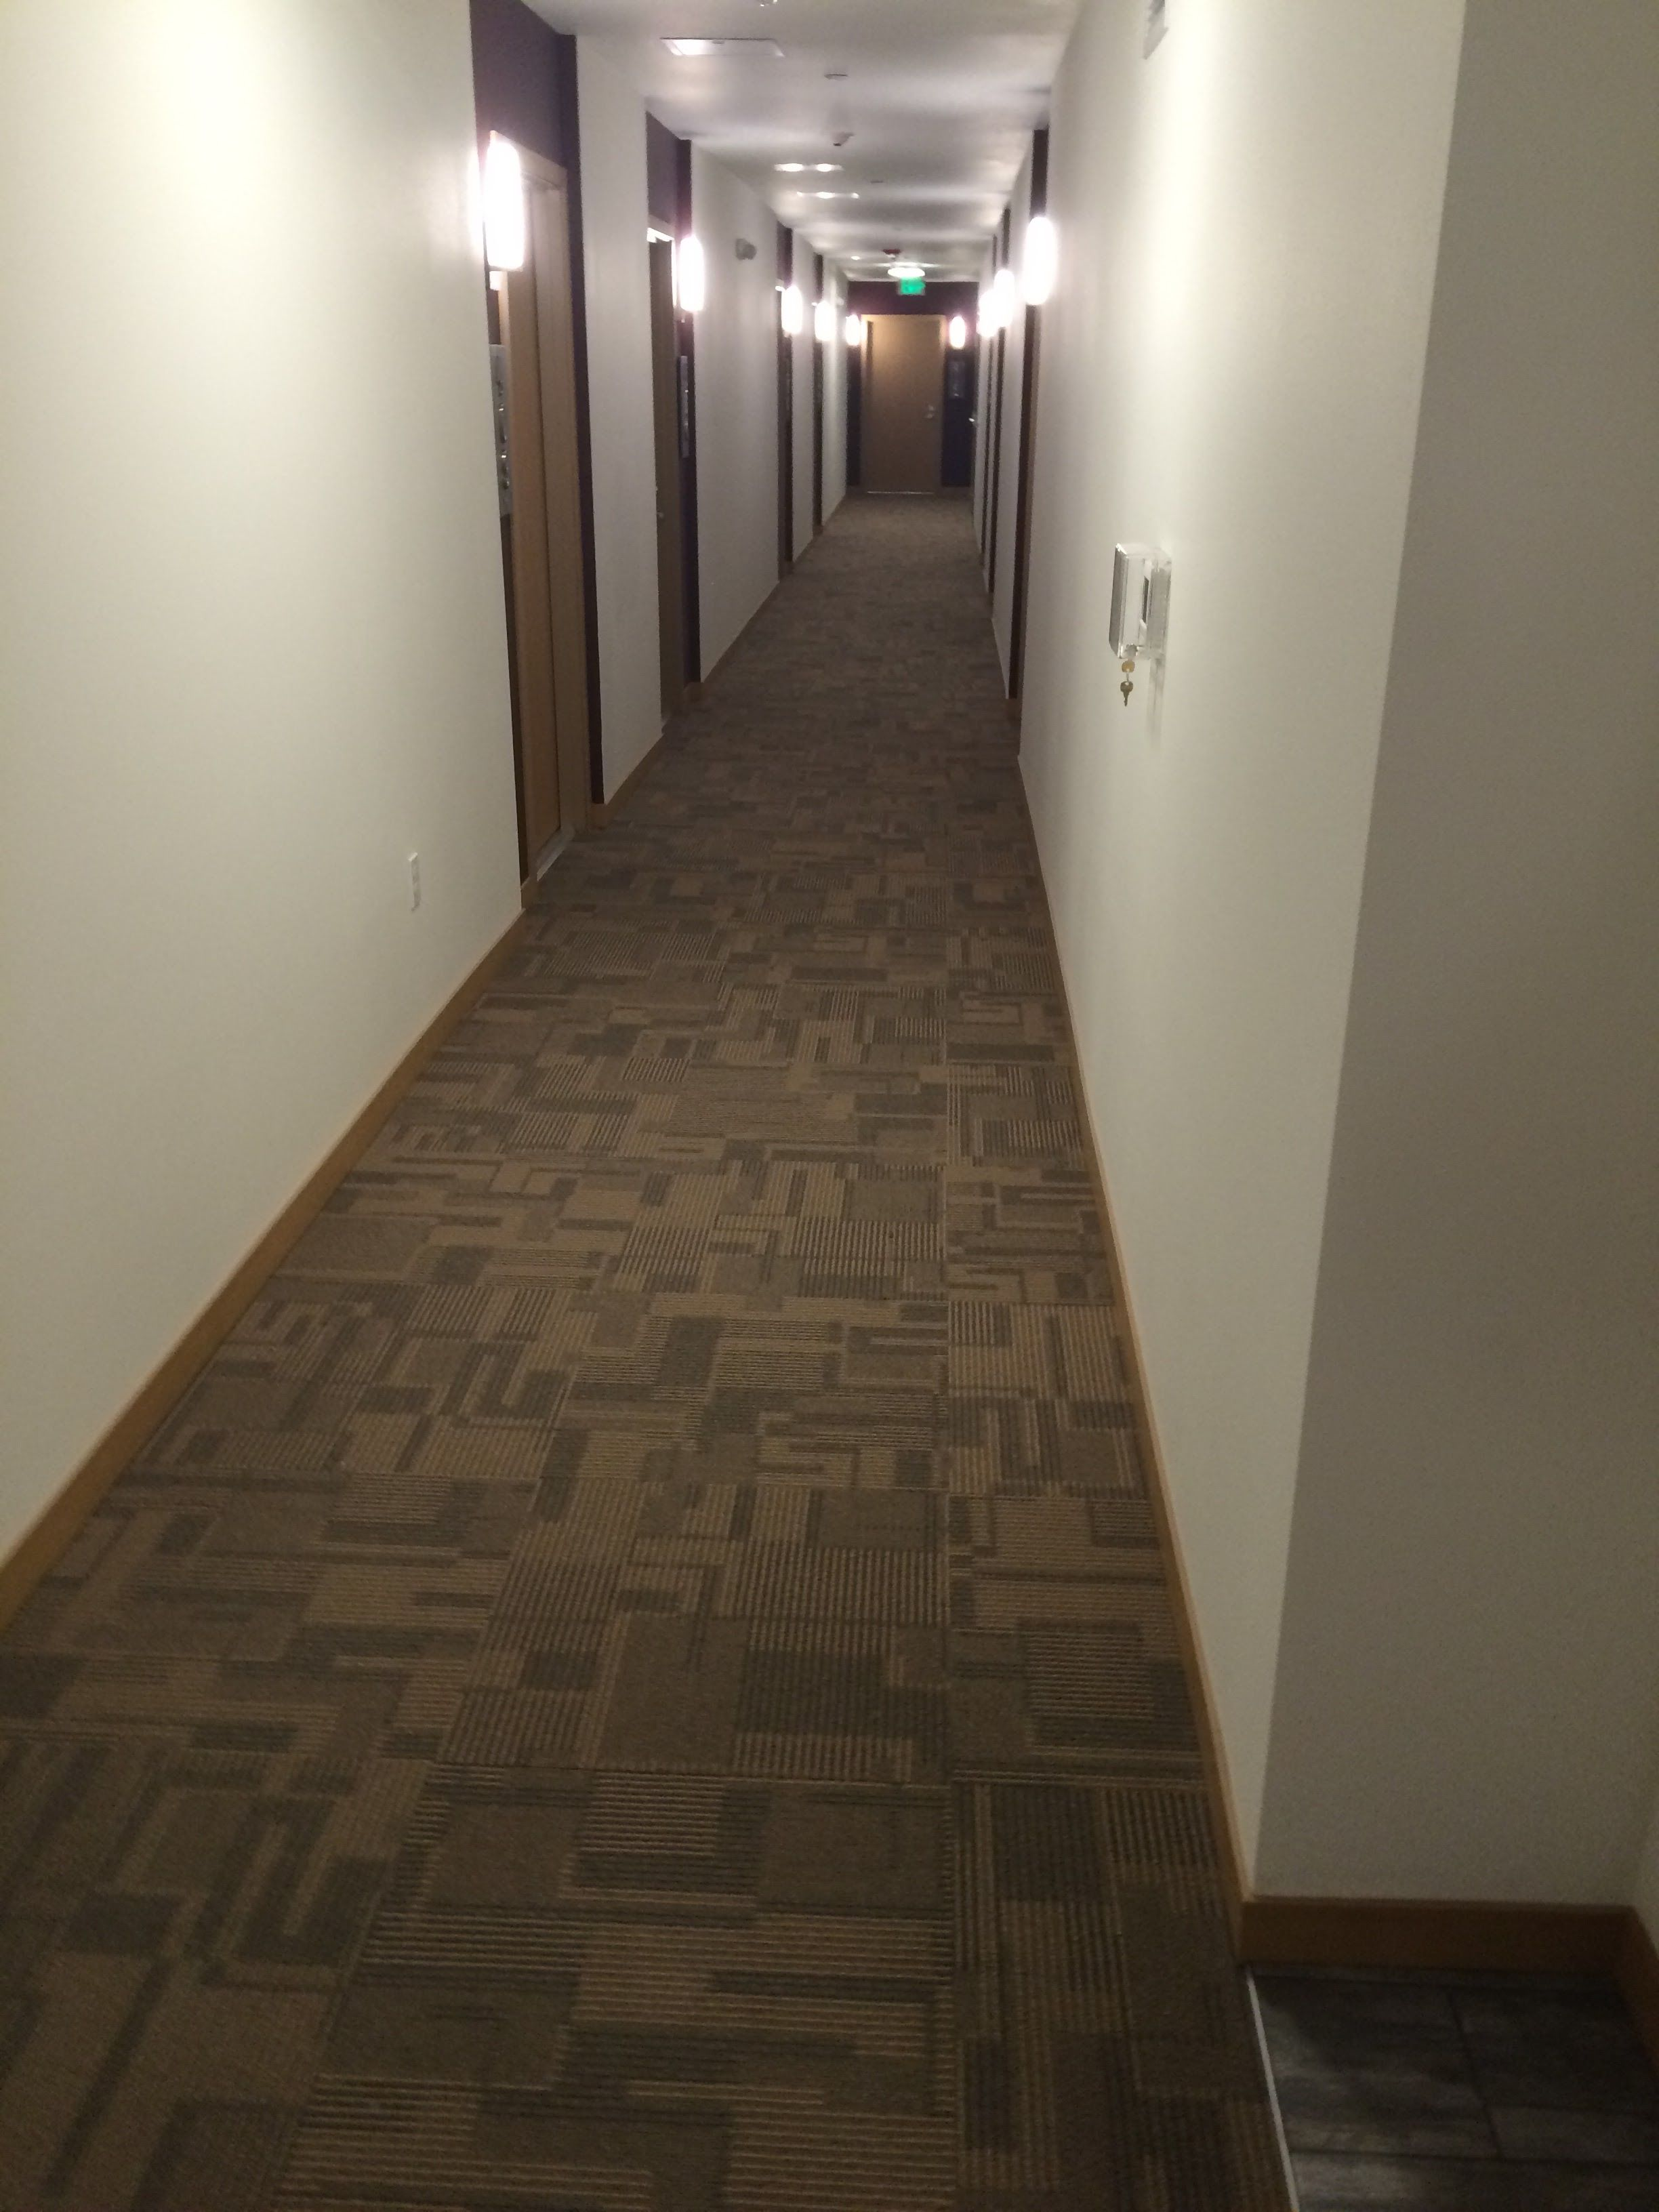 Bolyu Survey Carpet Tile Installed In Corridors At Junction Flats Apts West Seattle